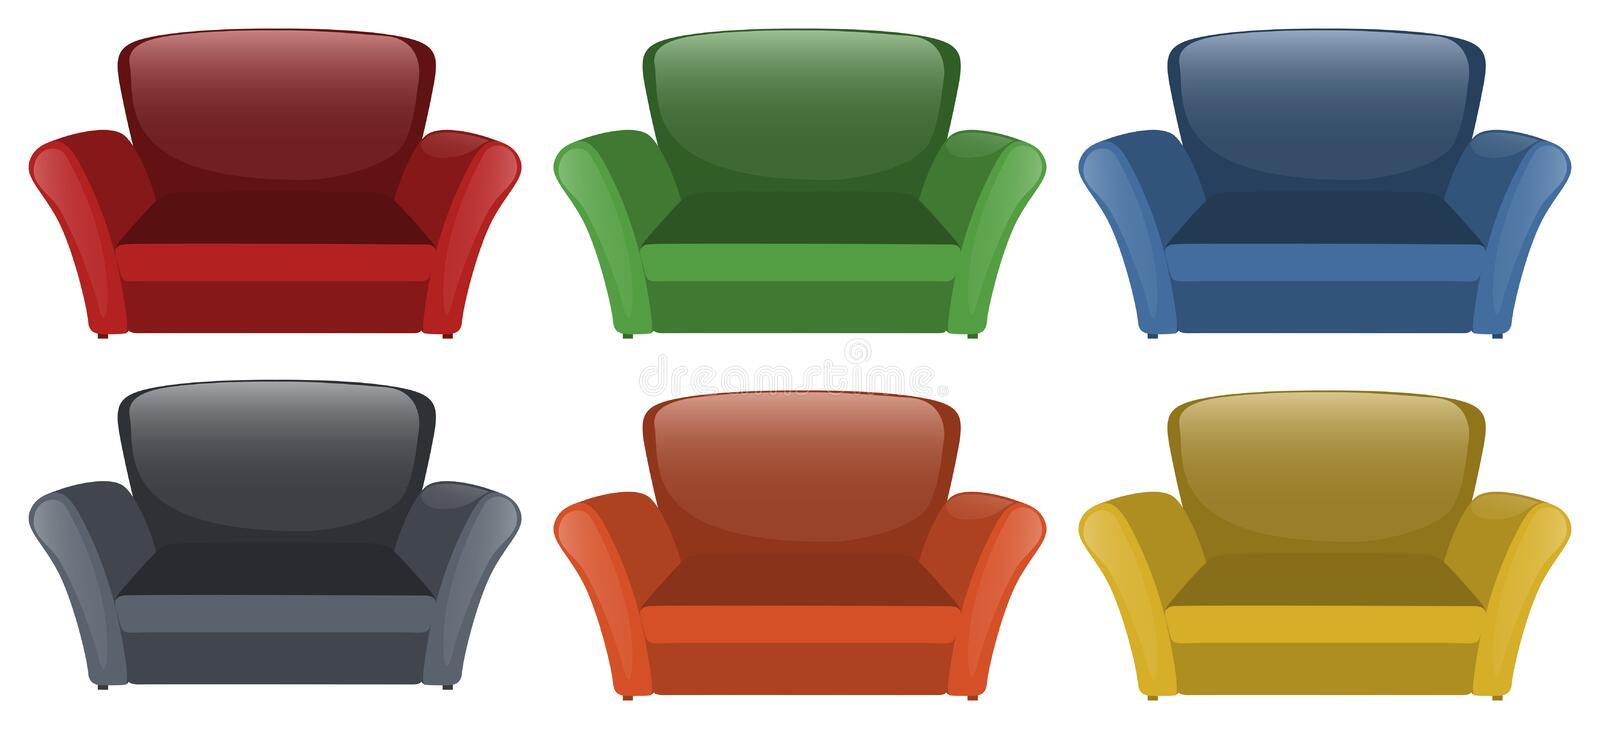 Sofa in six different colors. Illustration vector illustration